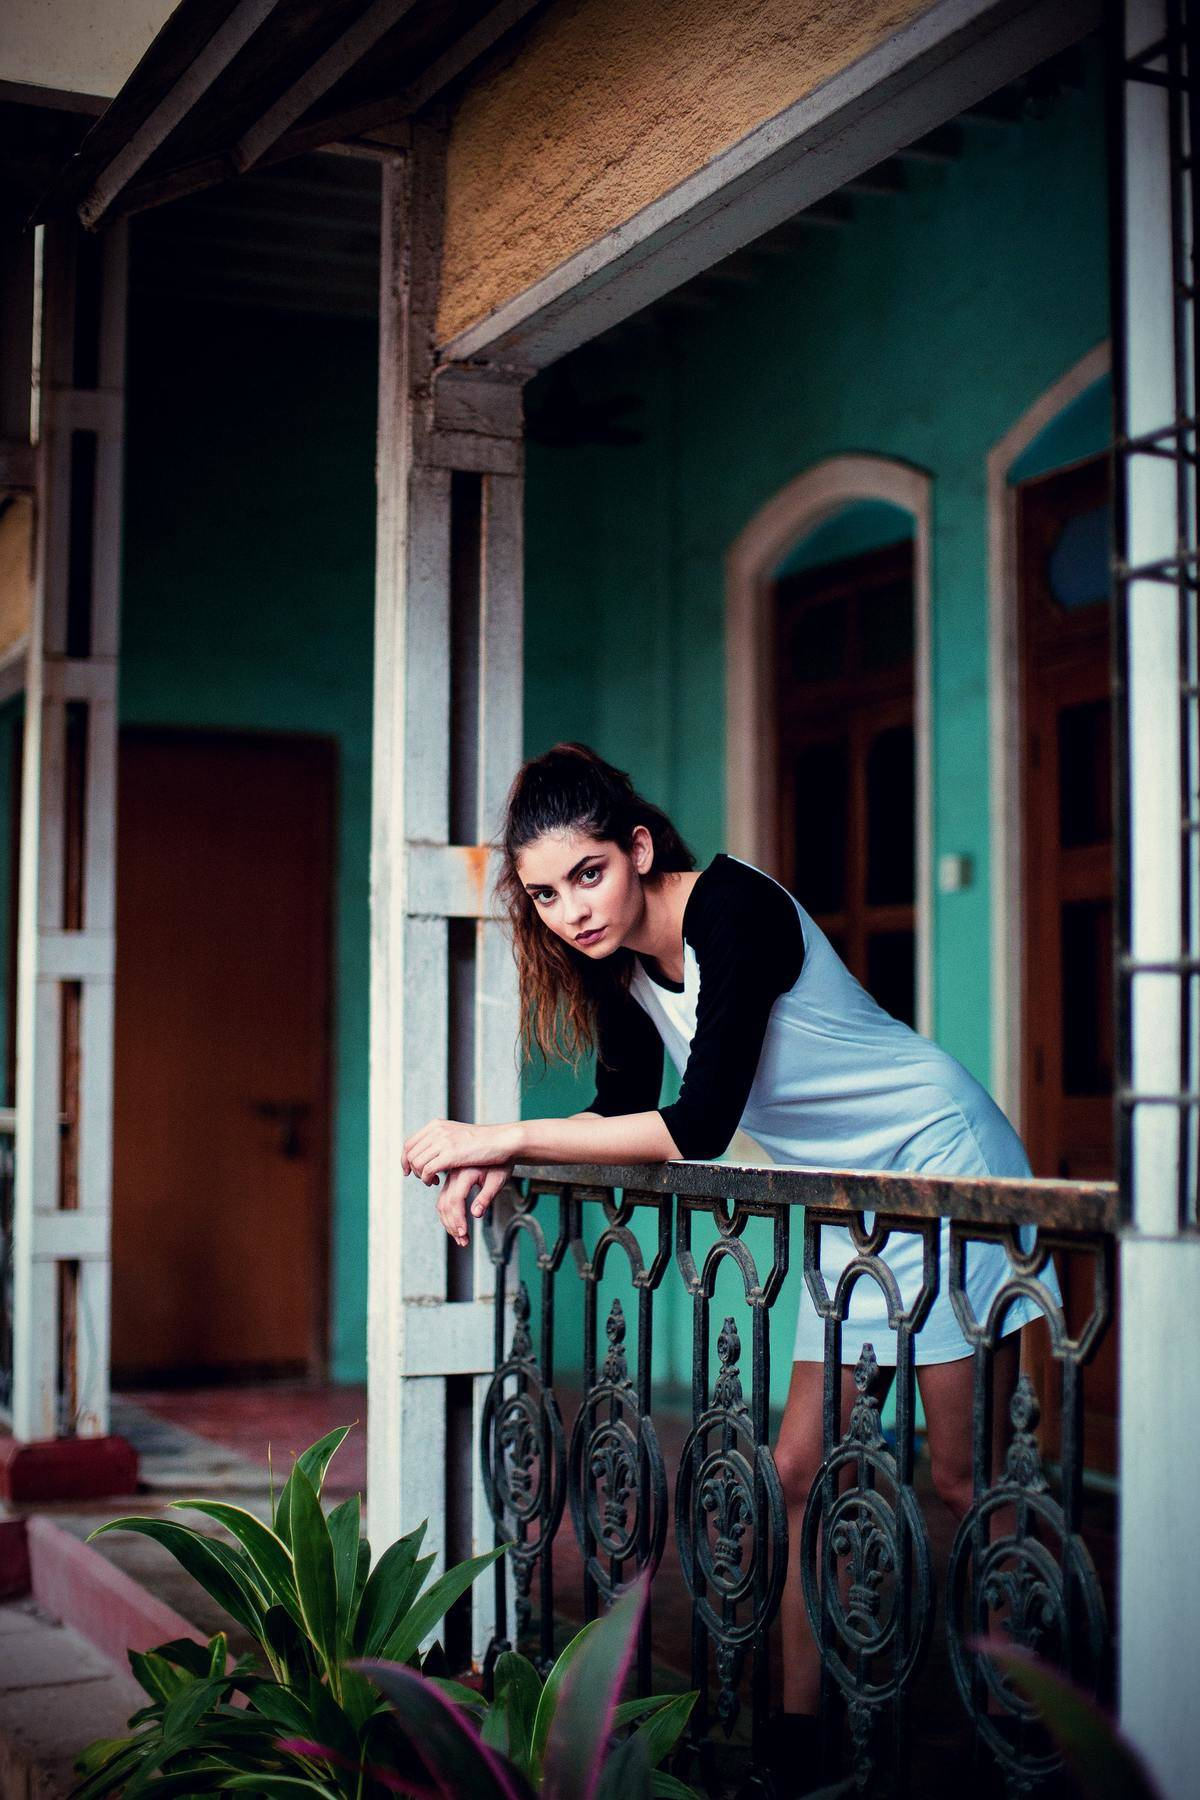 woman looks over from balcony